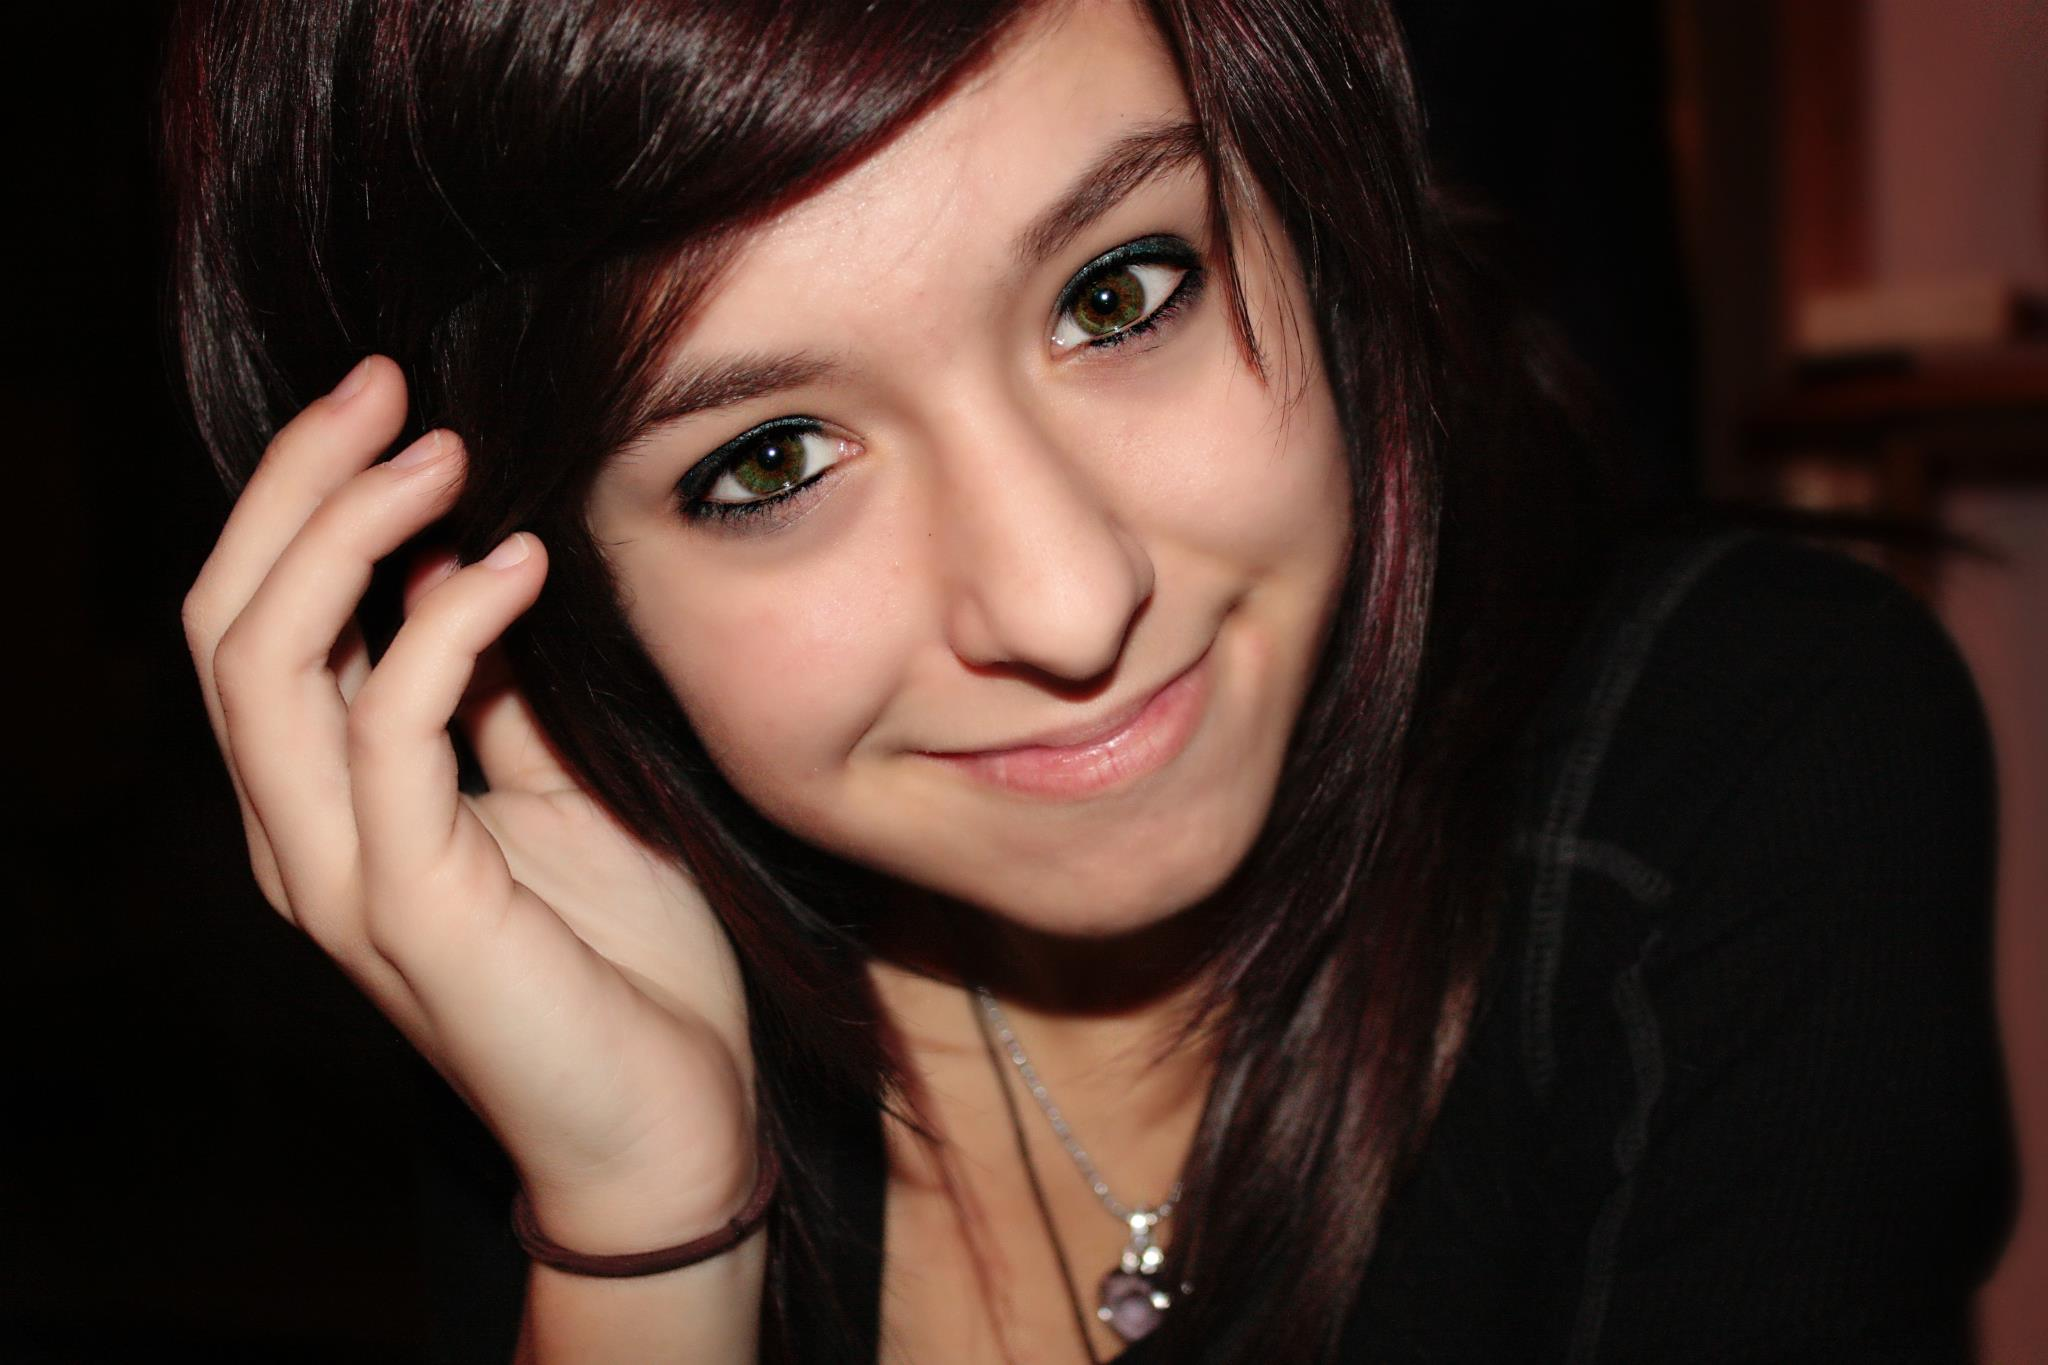 Christina Grimmie, Pure Truth LLC, PUre Truth, The Voice, Before You Exit